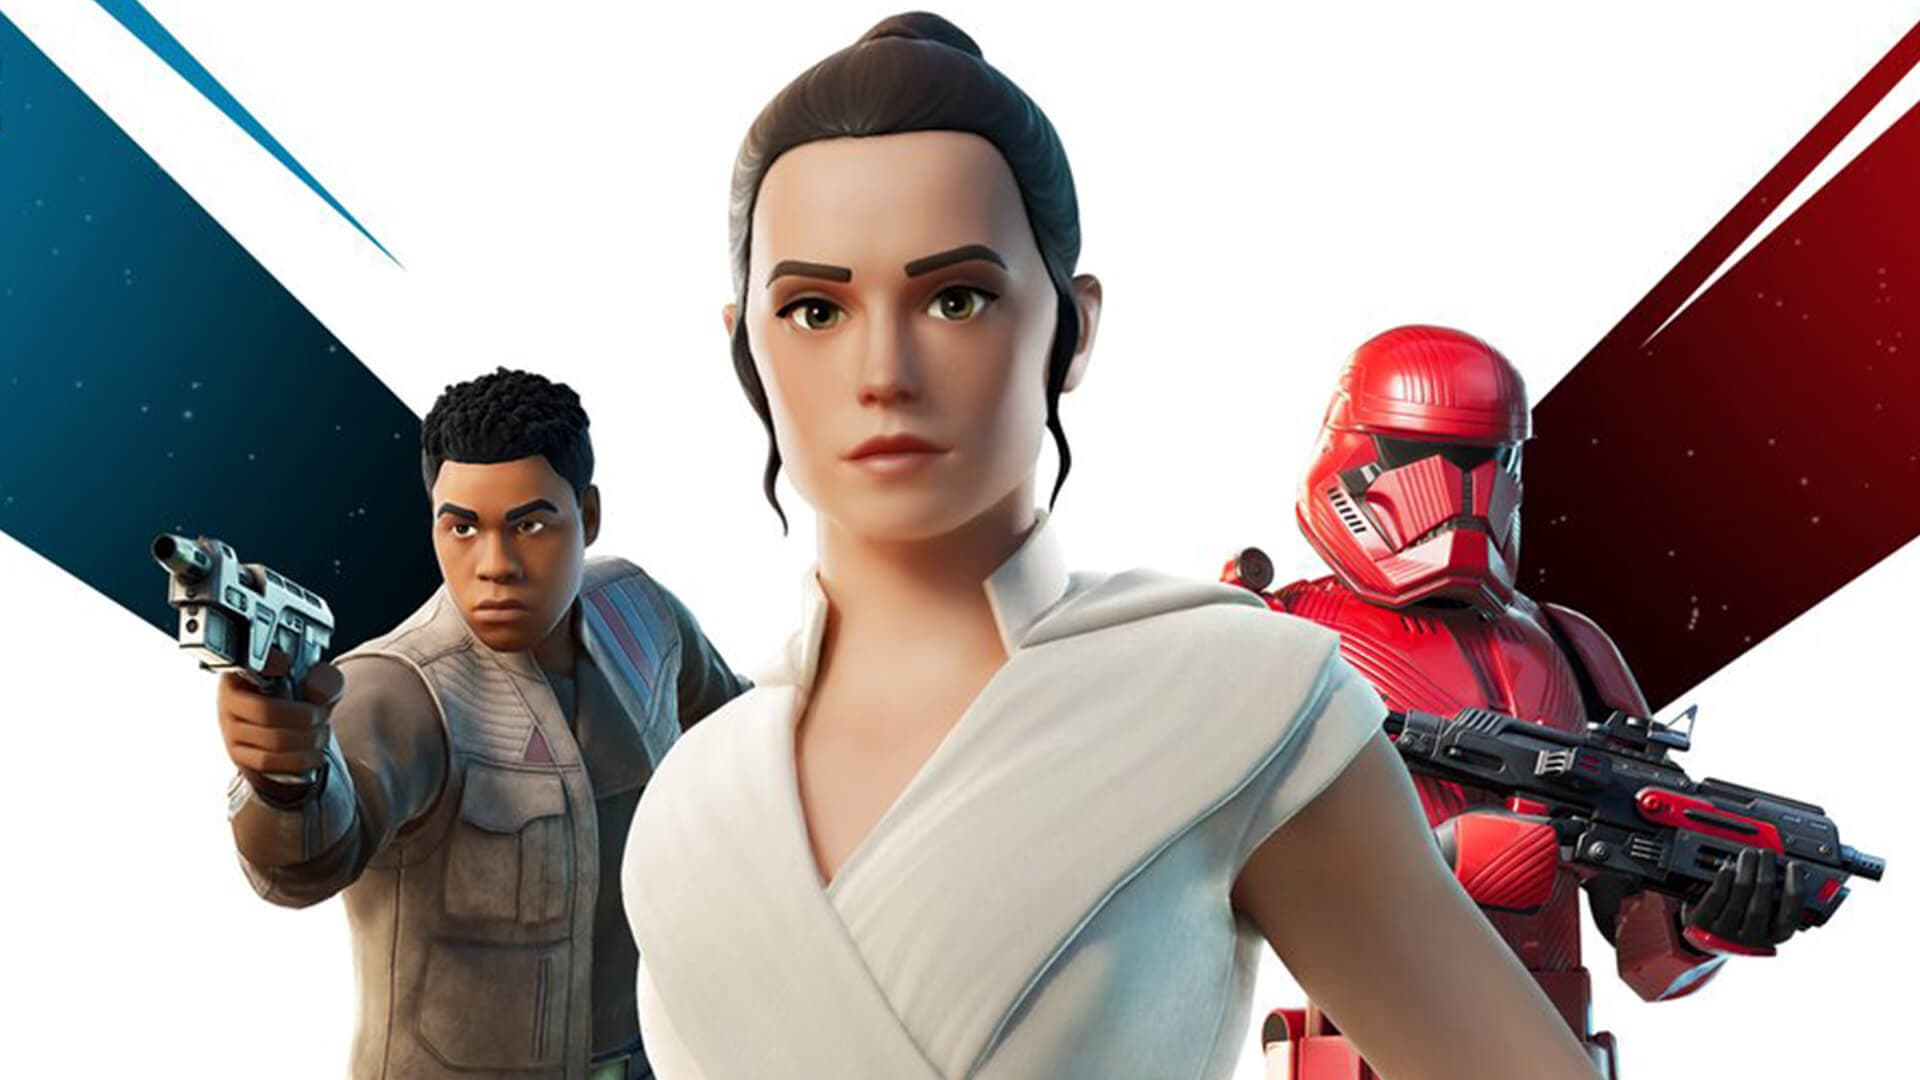 Ya están disponibles los artículos de Star Wars The Rise of Skywalker por tiempo limitado en Fortnite 4